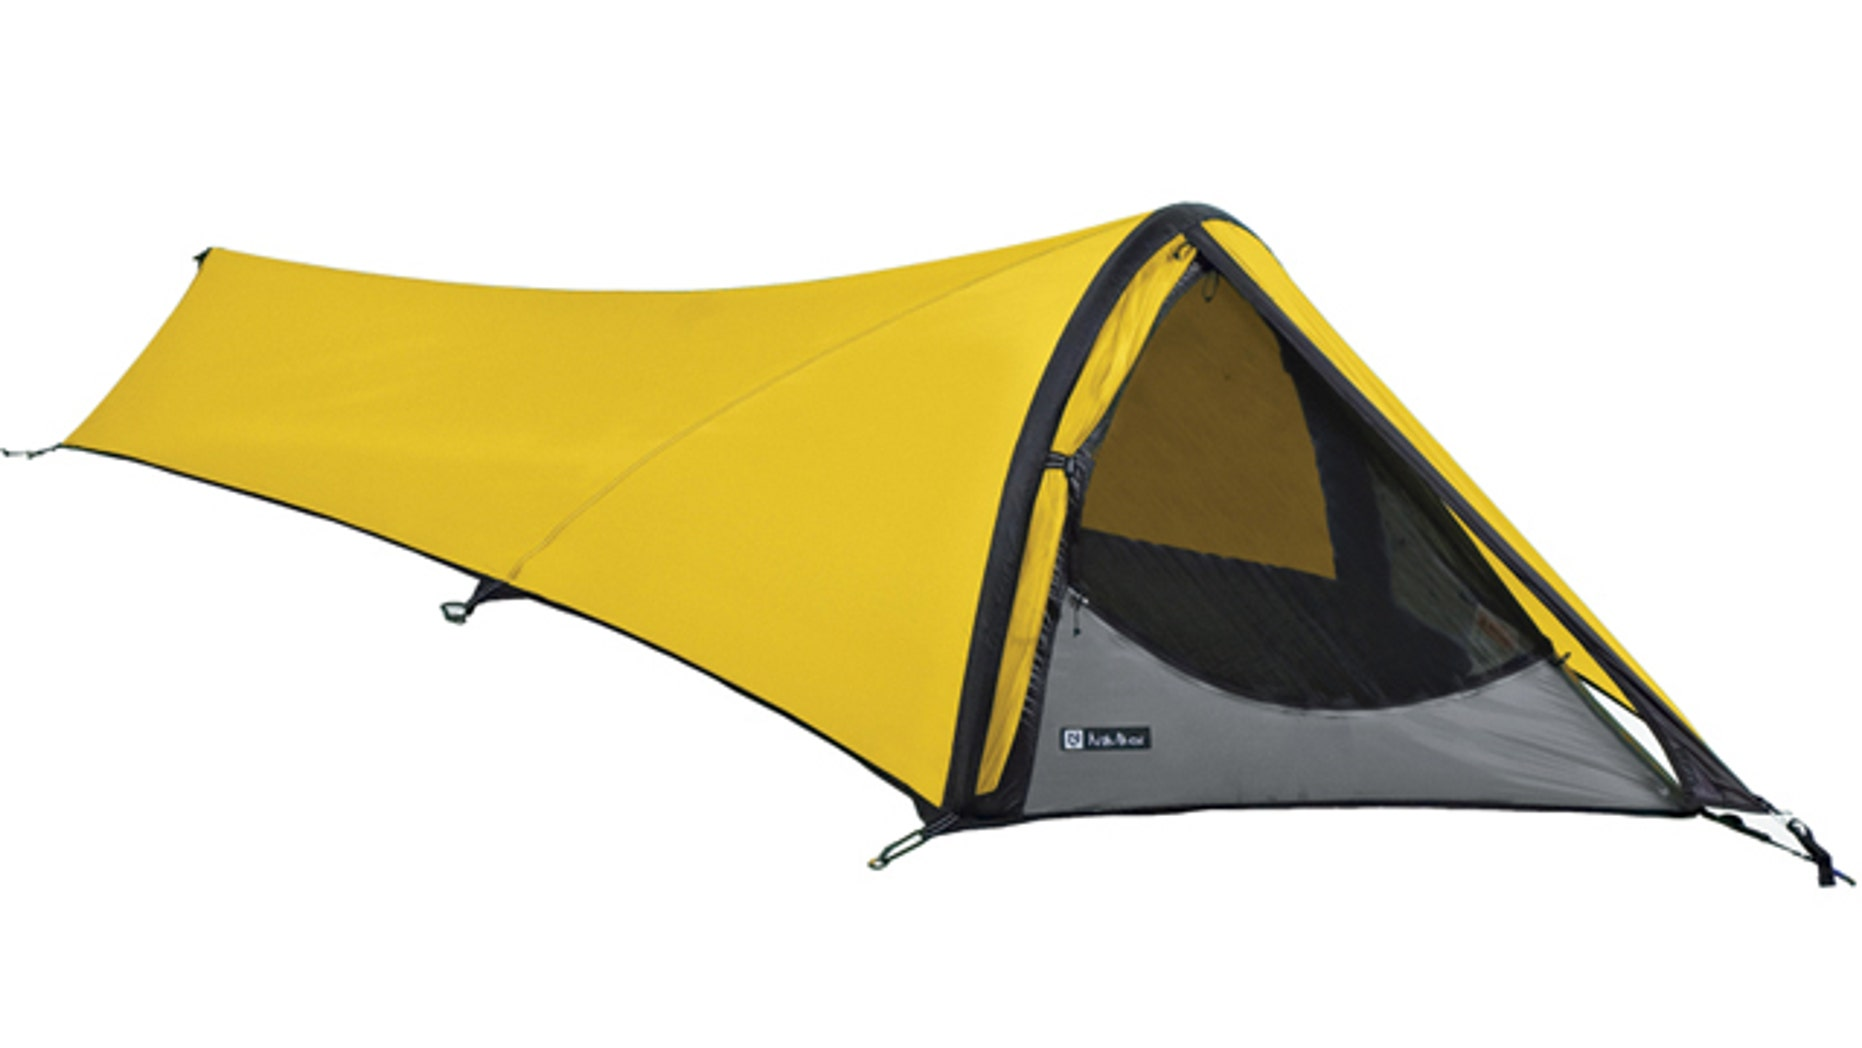 This product image courtesy of NEMO Equipment, Inc. shows the Gogo Elite tent. NEMO uses computer-aided design software to find the minimum amount of poles and material they can use to still have a comfortable tent. (AP Photo/NEMO Equipment, Inc.)